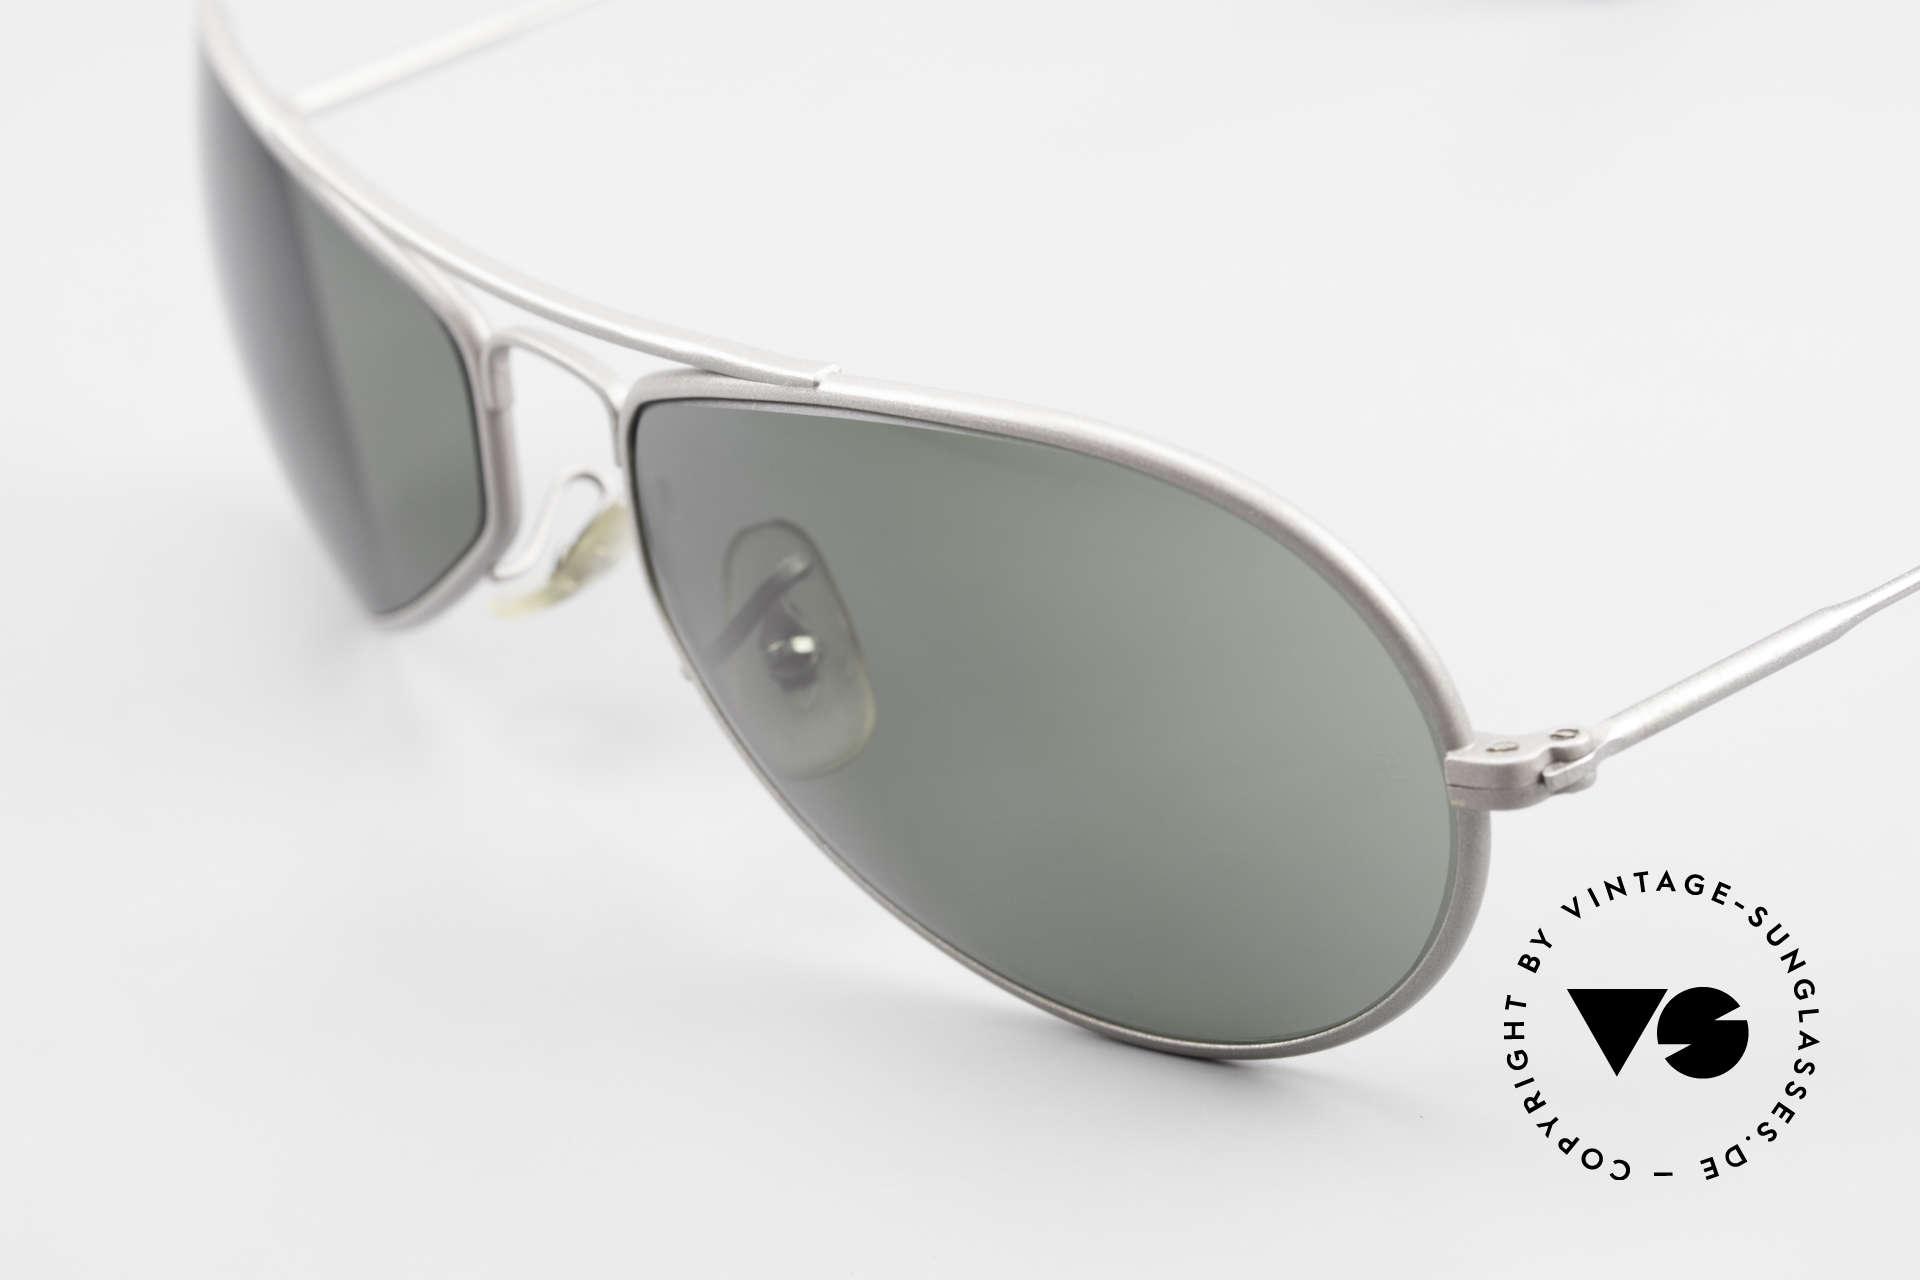 Ray Ban Air Boss Sporty 90's USA Ray-Ban Model, unworn; like all our vintage B&L USA Ray-Bans, Made for Men and Women